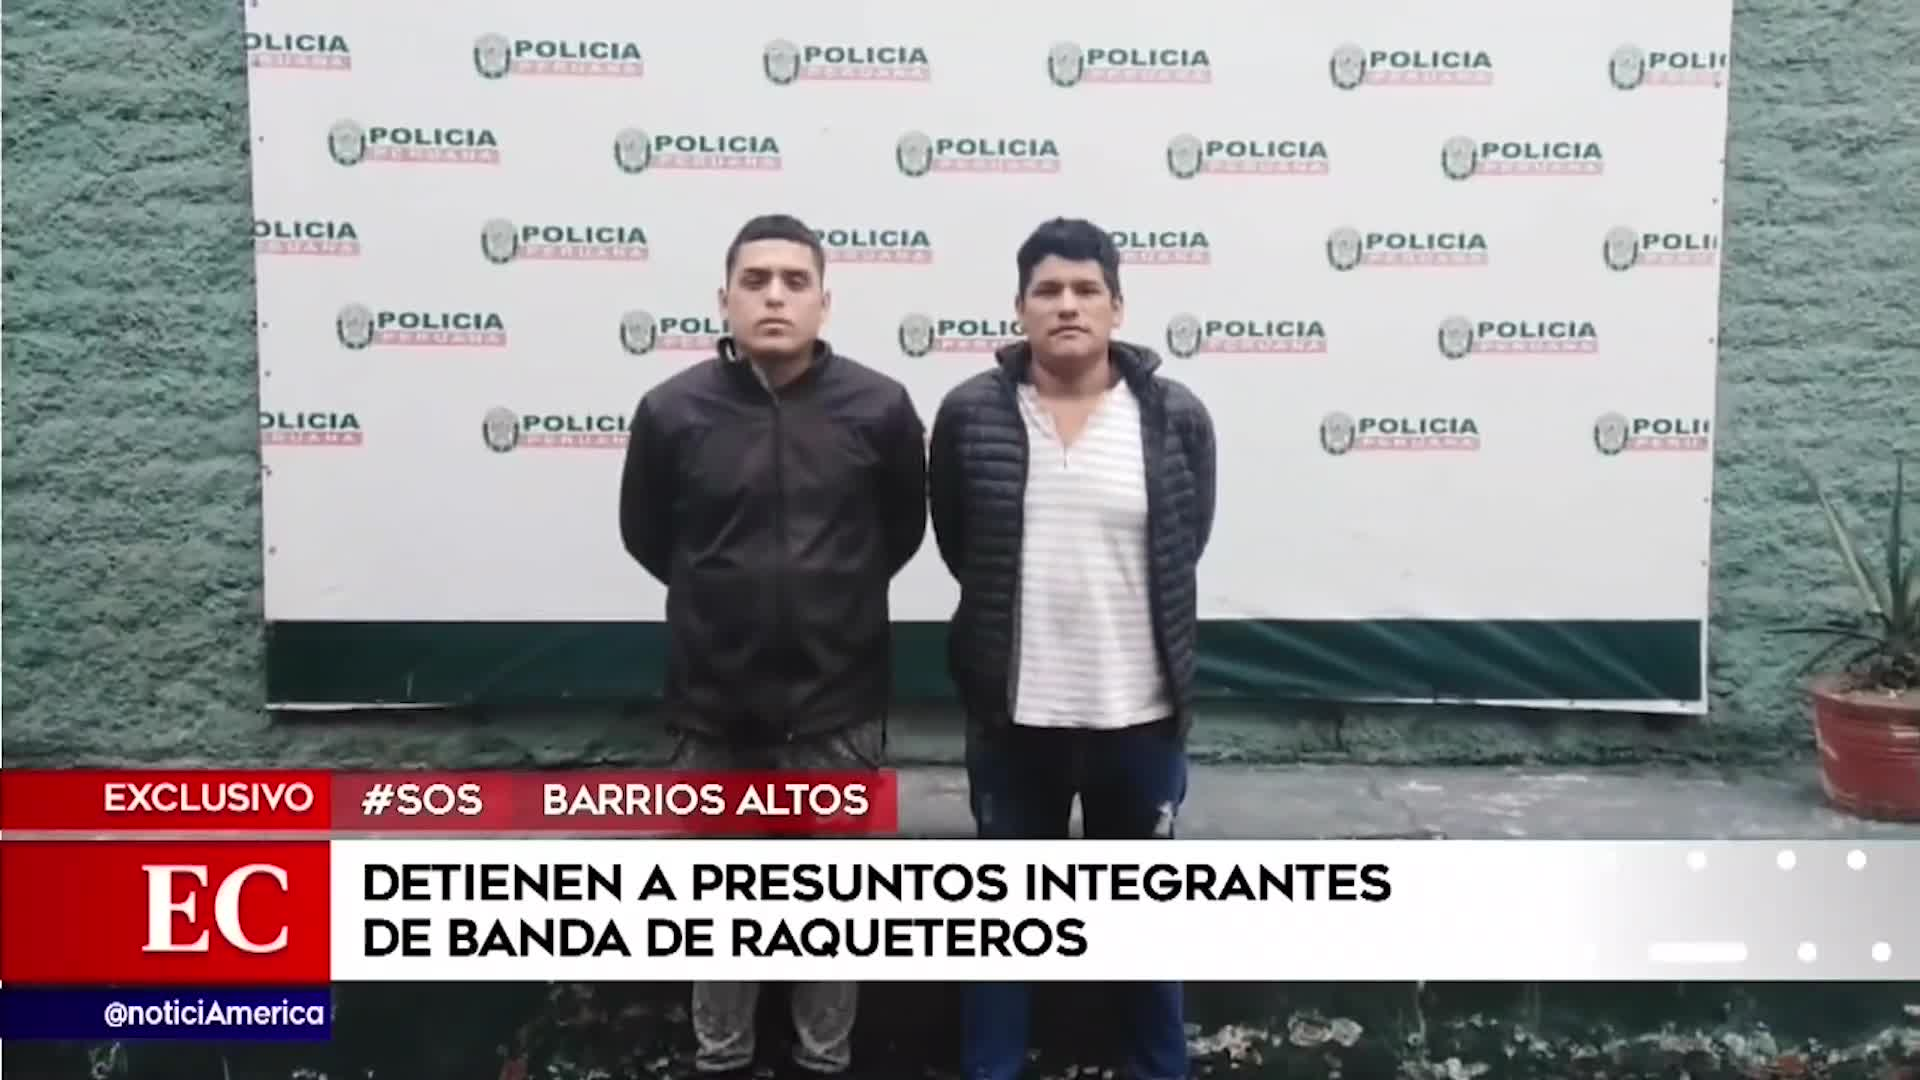 Barrios Altos: banda de raqueteros son capturados por la policía